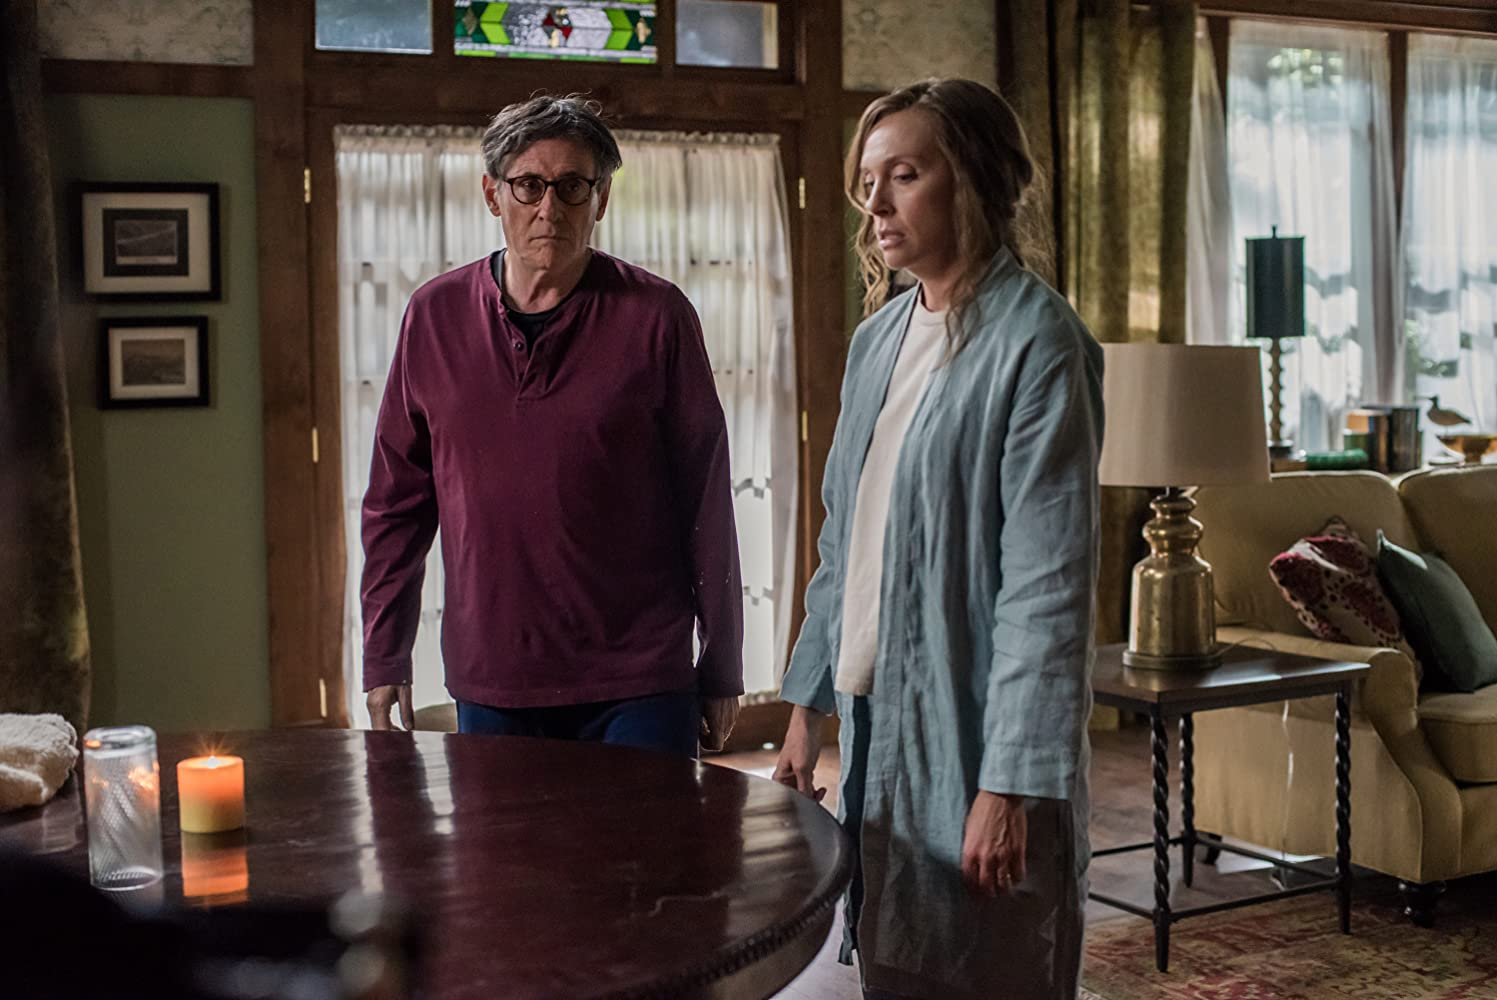 Annie and her husband in Hereditary (2018). The pair look solemn together.